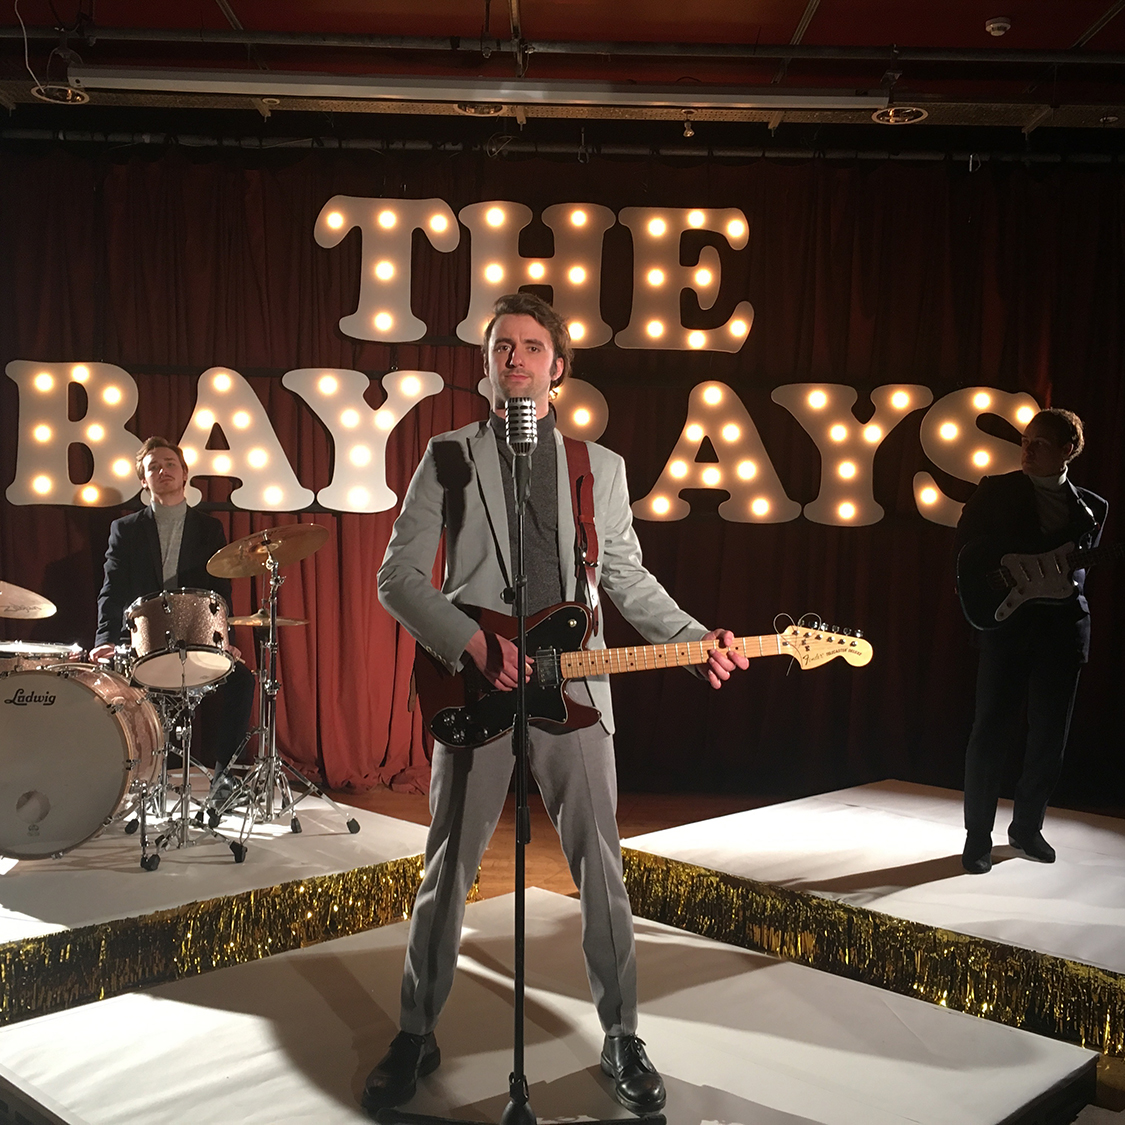 Production design and costume   The Bay Rays - Satisfaction, music video